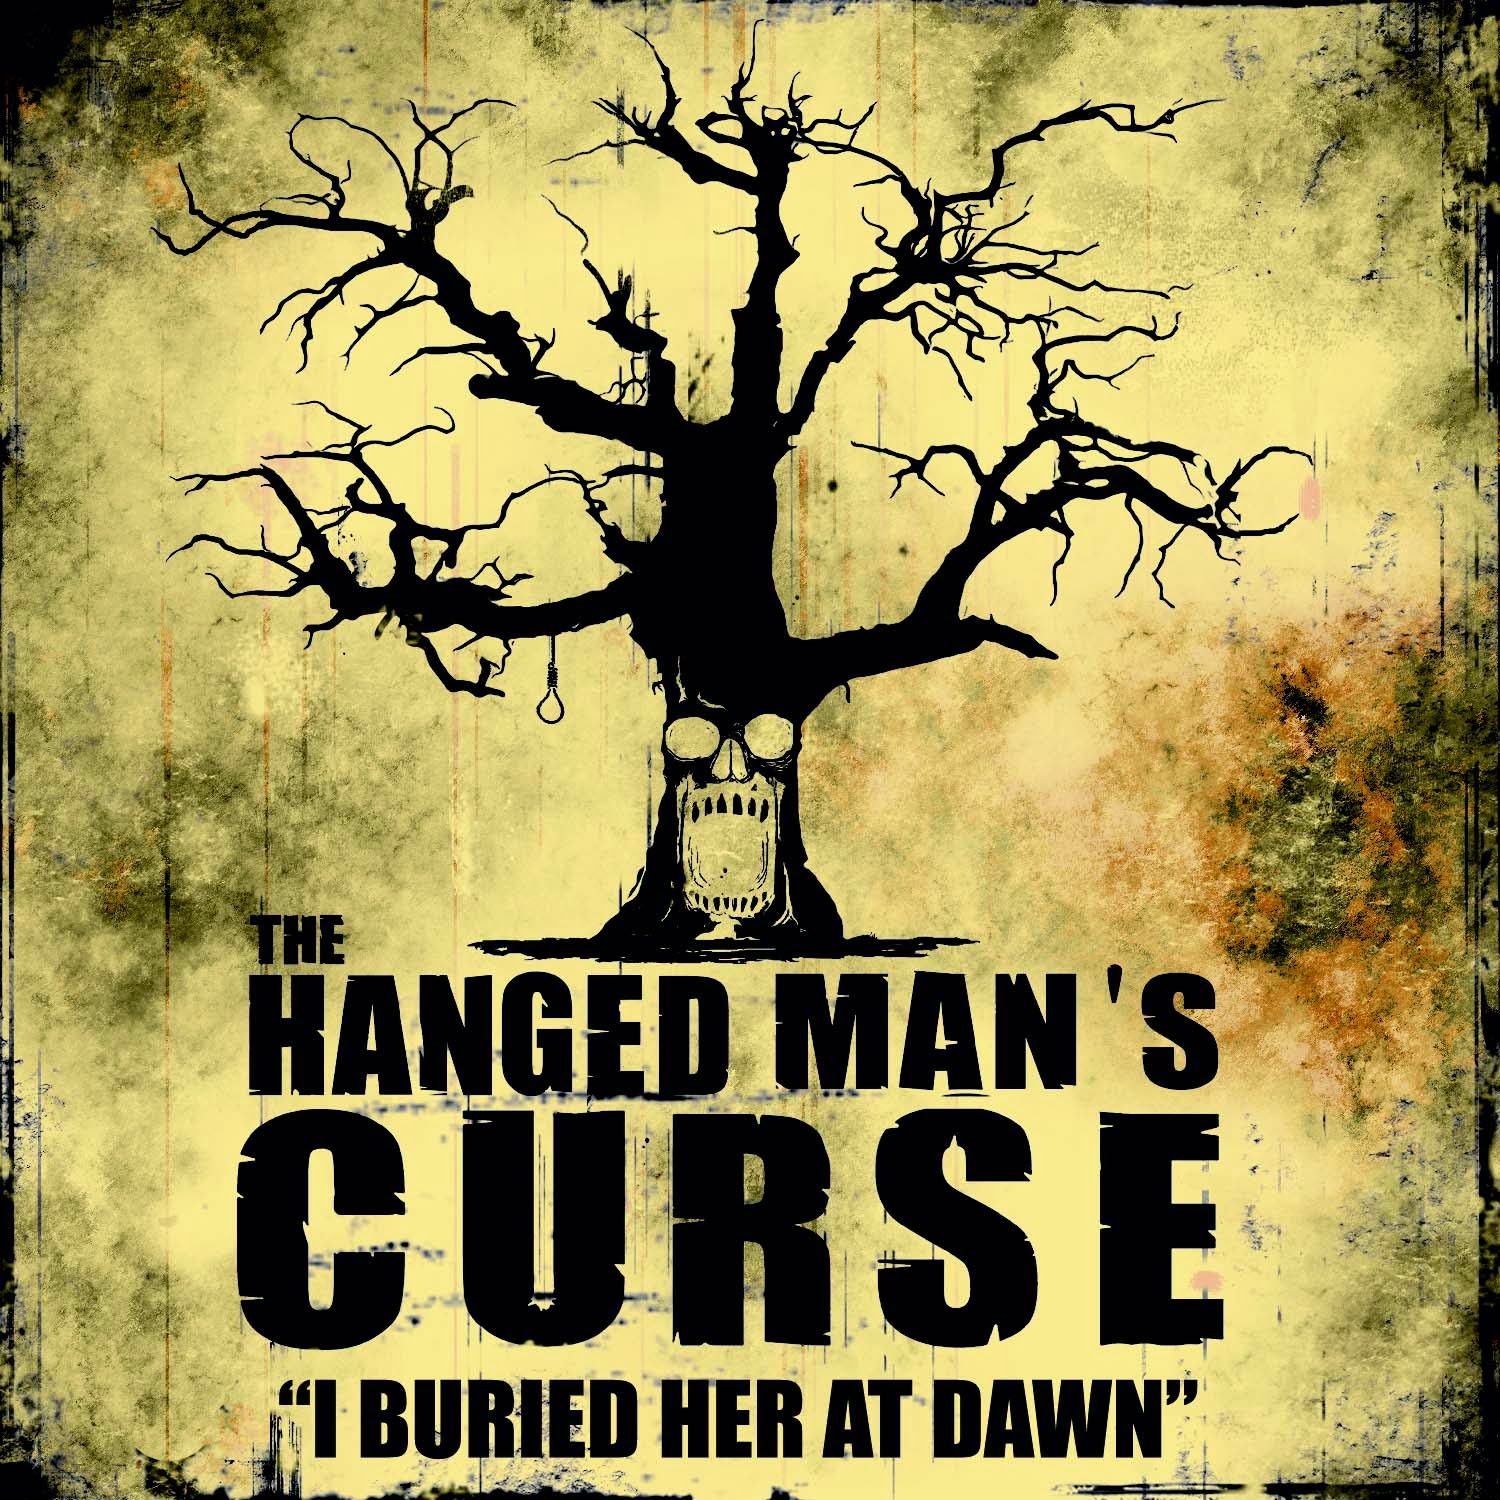 http://thehangedmanscurse.bandcamp.com/track/i-buried-her-at-dawn